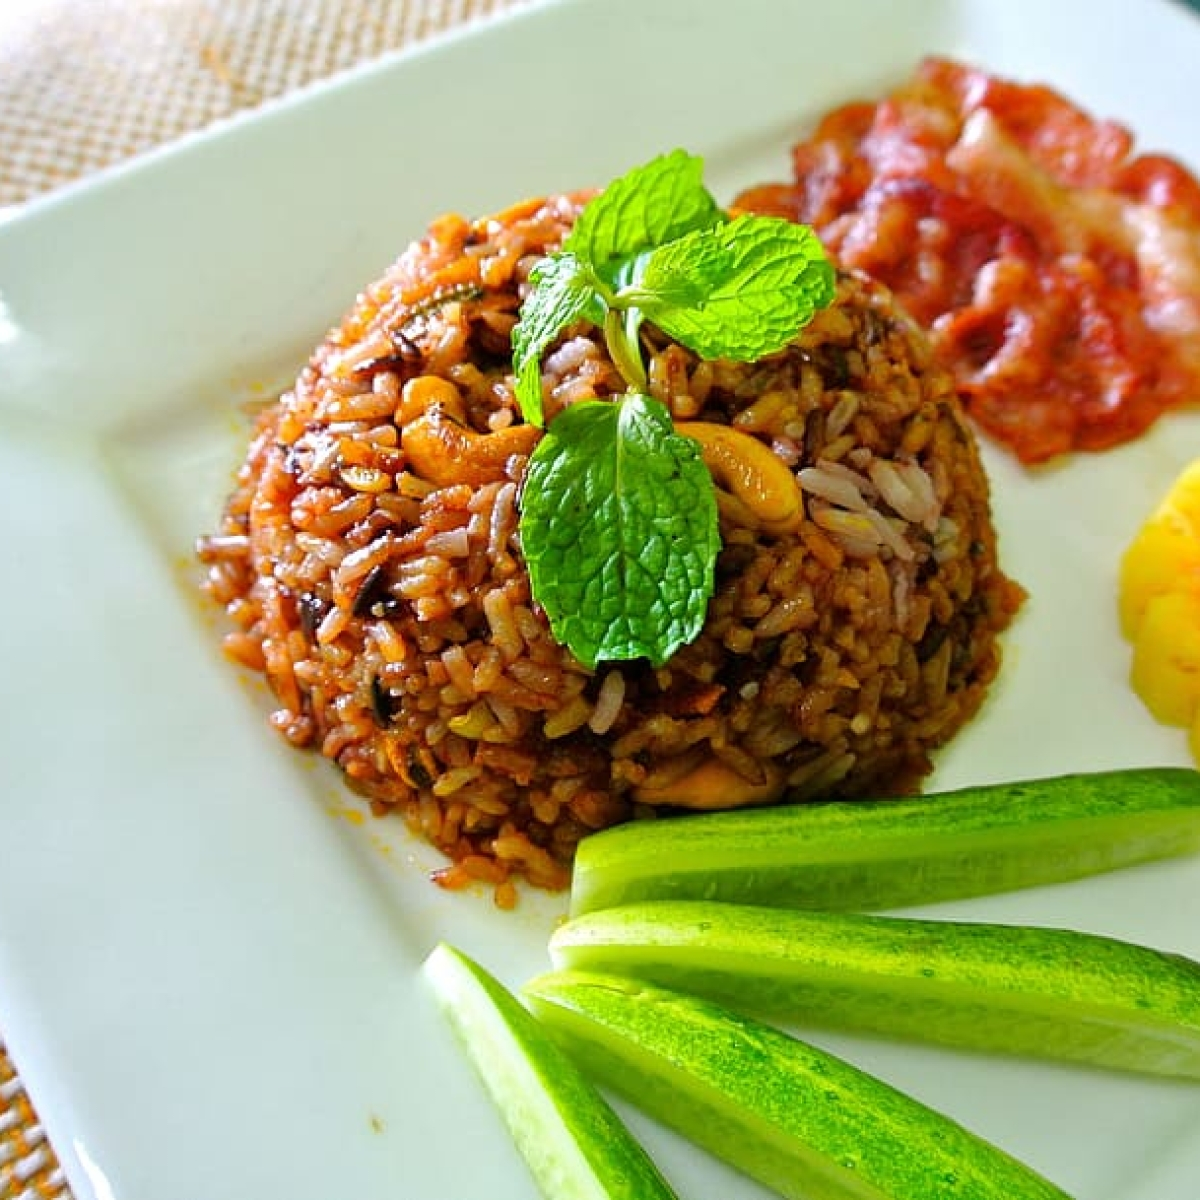 Coronavirus Lockdown Nutrition: Give your meal a Latin touch with Mexican tomato rice